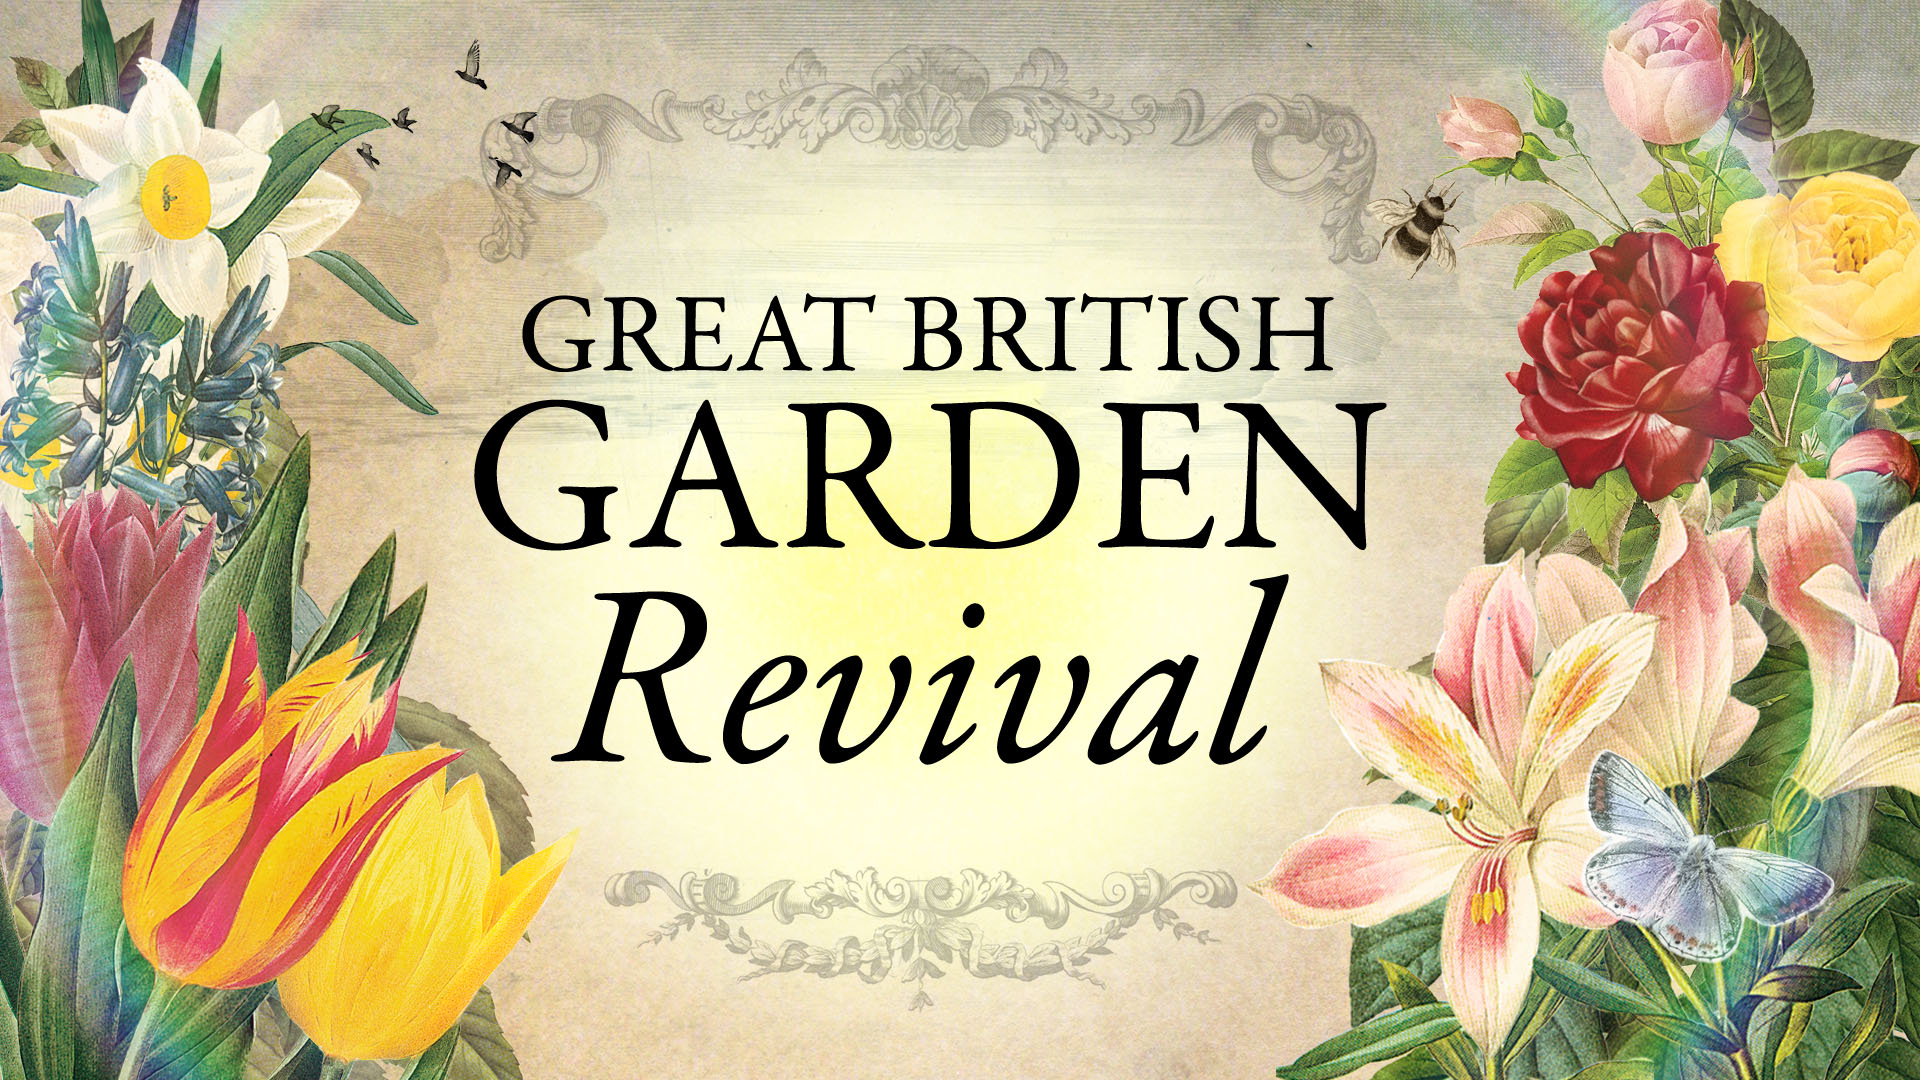 BBC MEDIA CENTRE – The award-winning series Great British Garden Revival returns to BBC Two with Britain's top television gardening talent